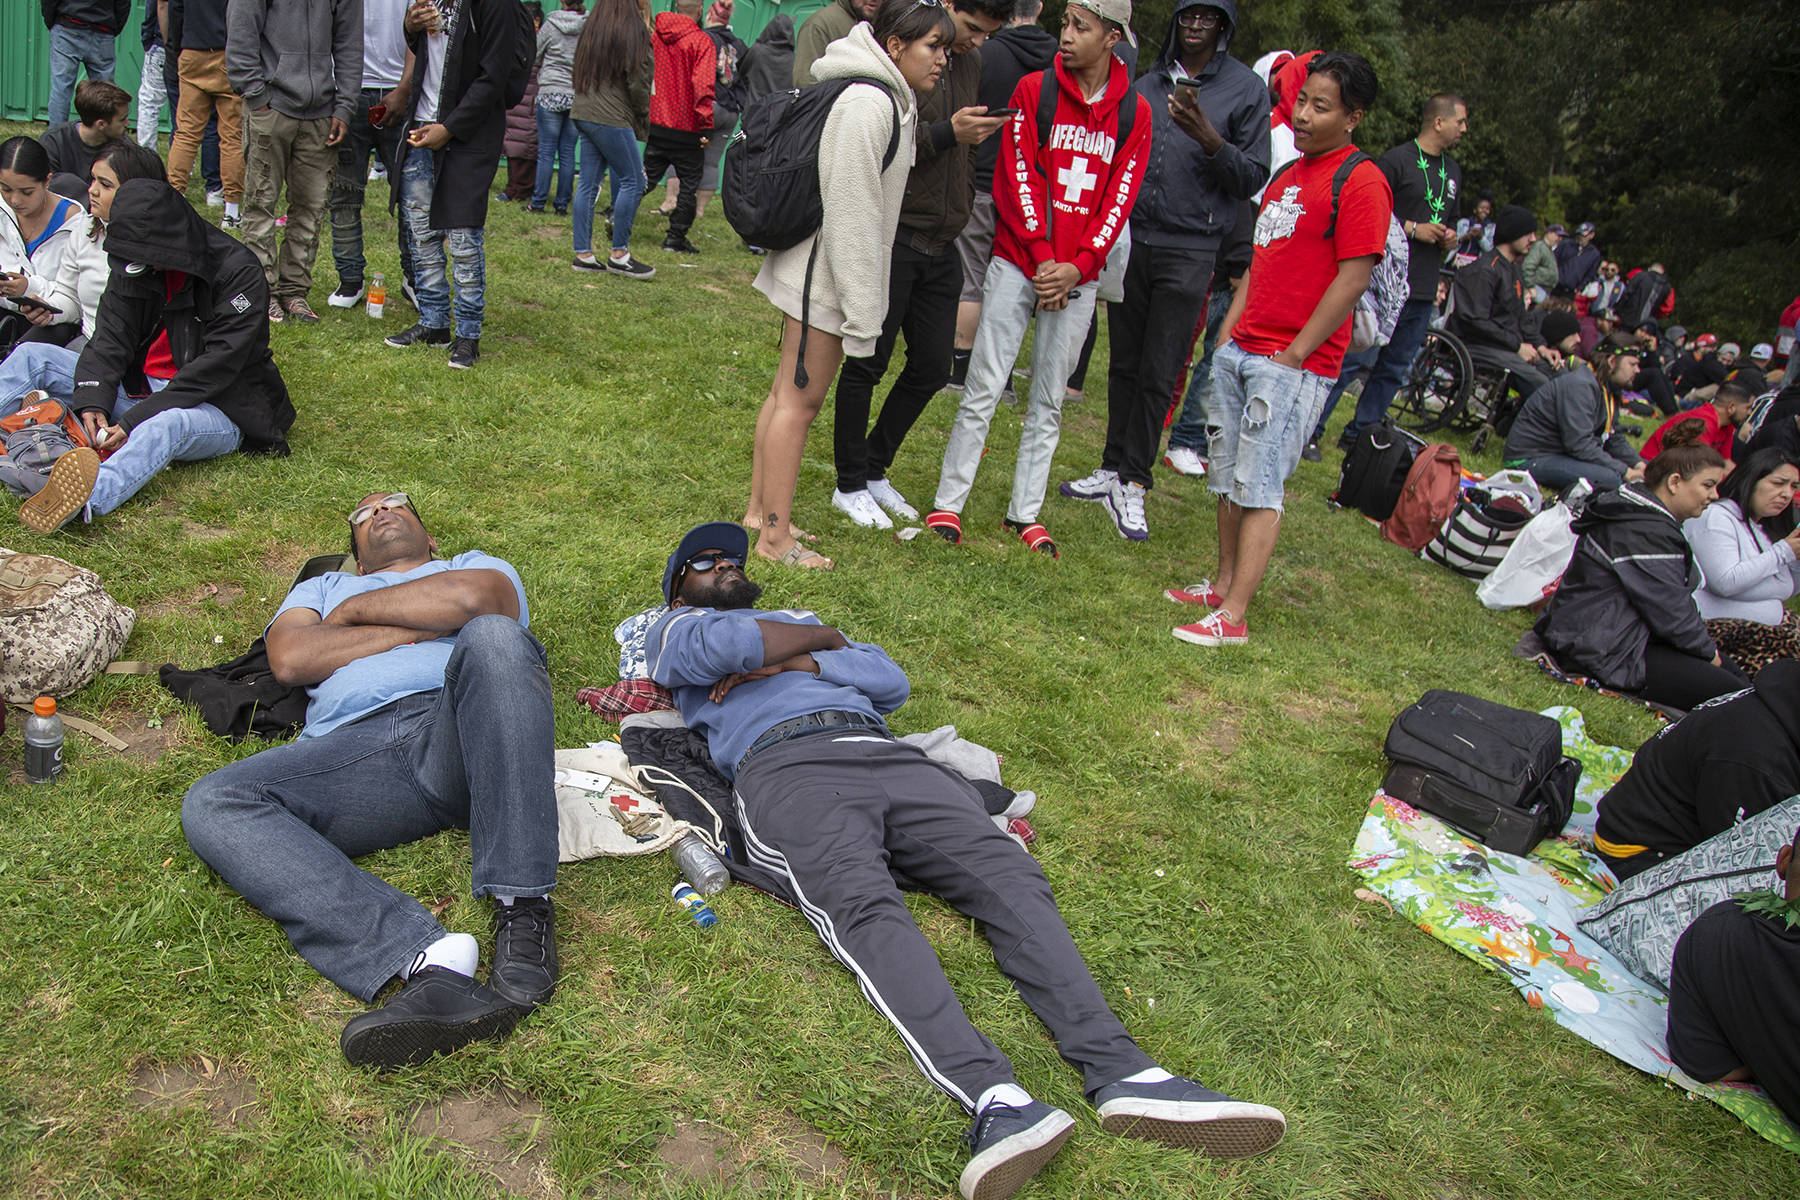 Two event attendees take a nap at the 420 event at Hippie Hill on Saturday, April 20, 2019. (Ellie Doyen/Special to S.F. Examiner)